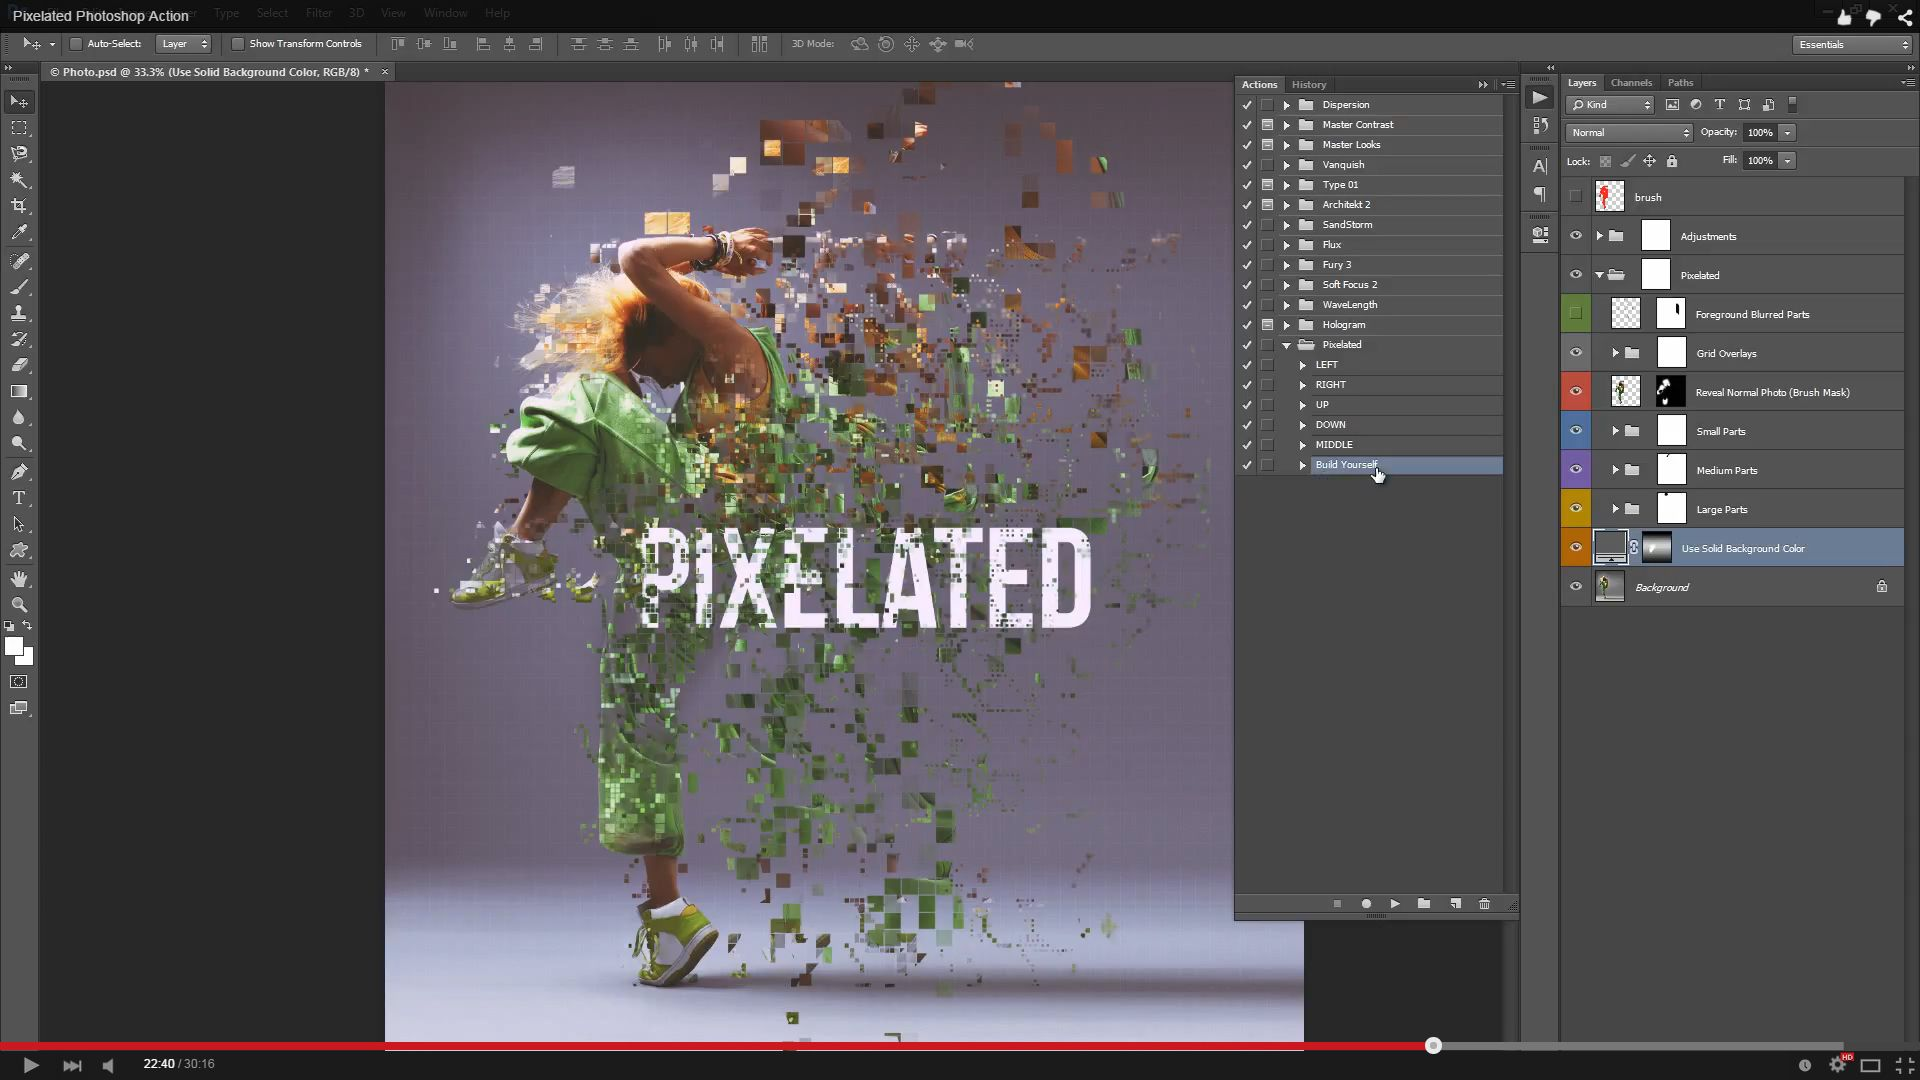 Pixelated Photoshop Action